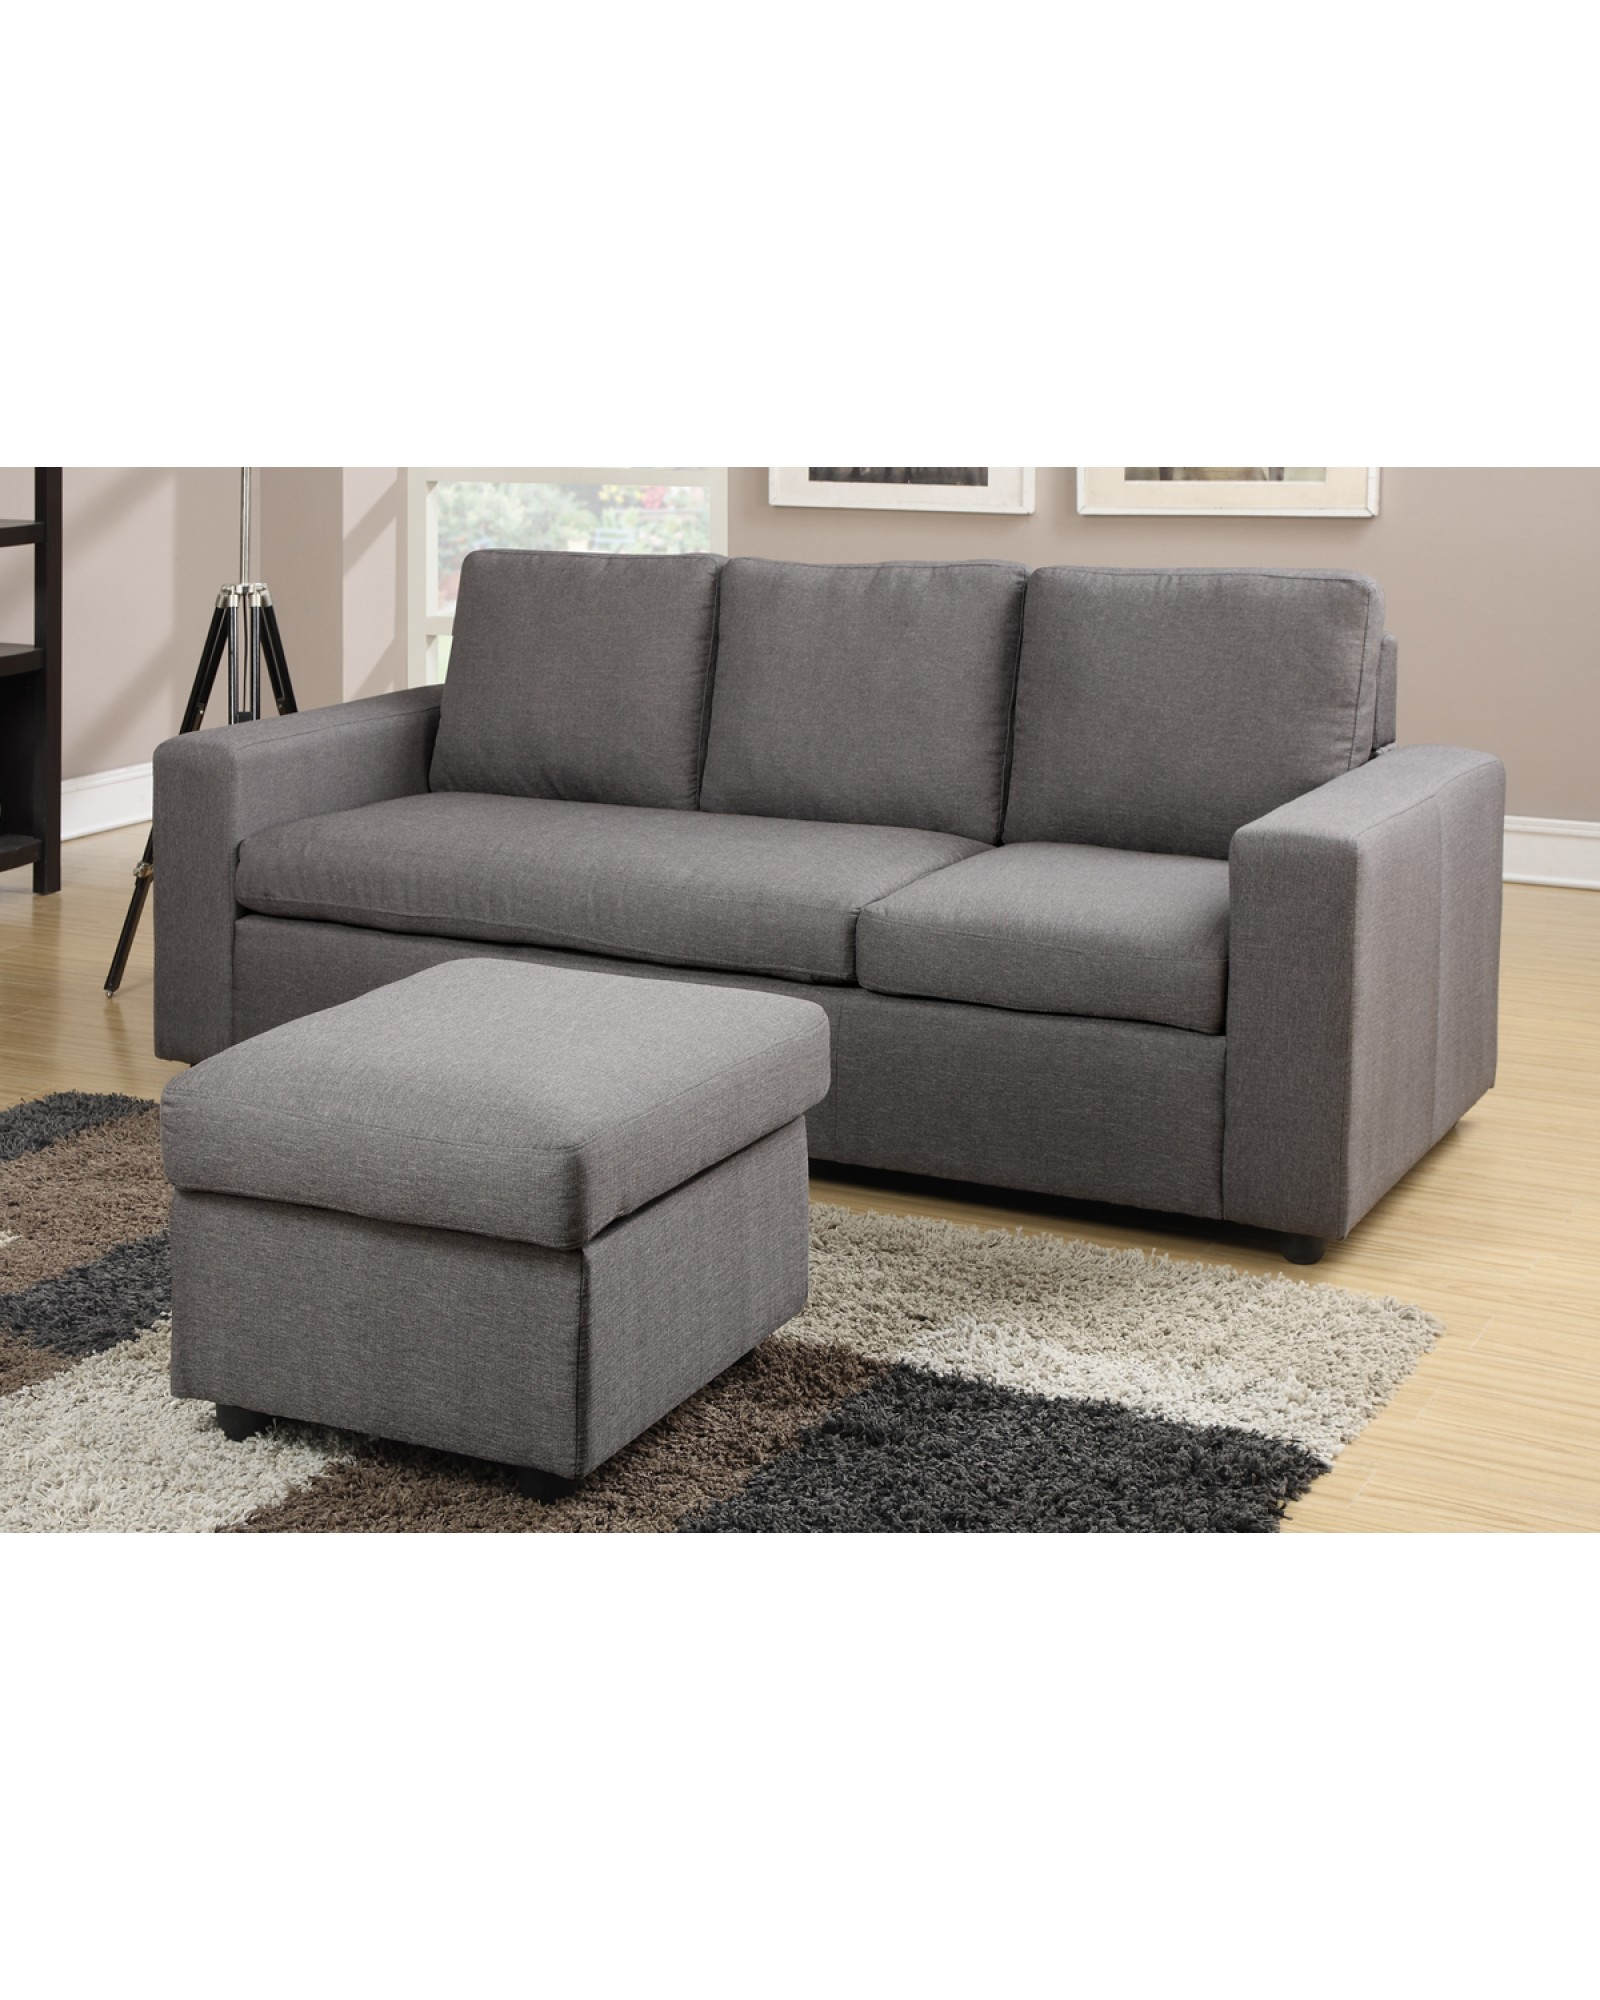 Modern Gray Reversible Linen Style Sectional by Poundex